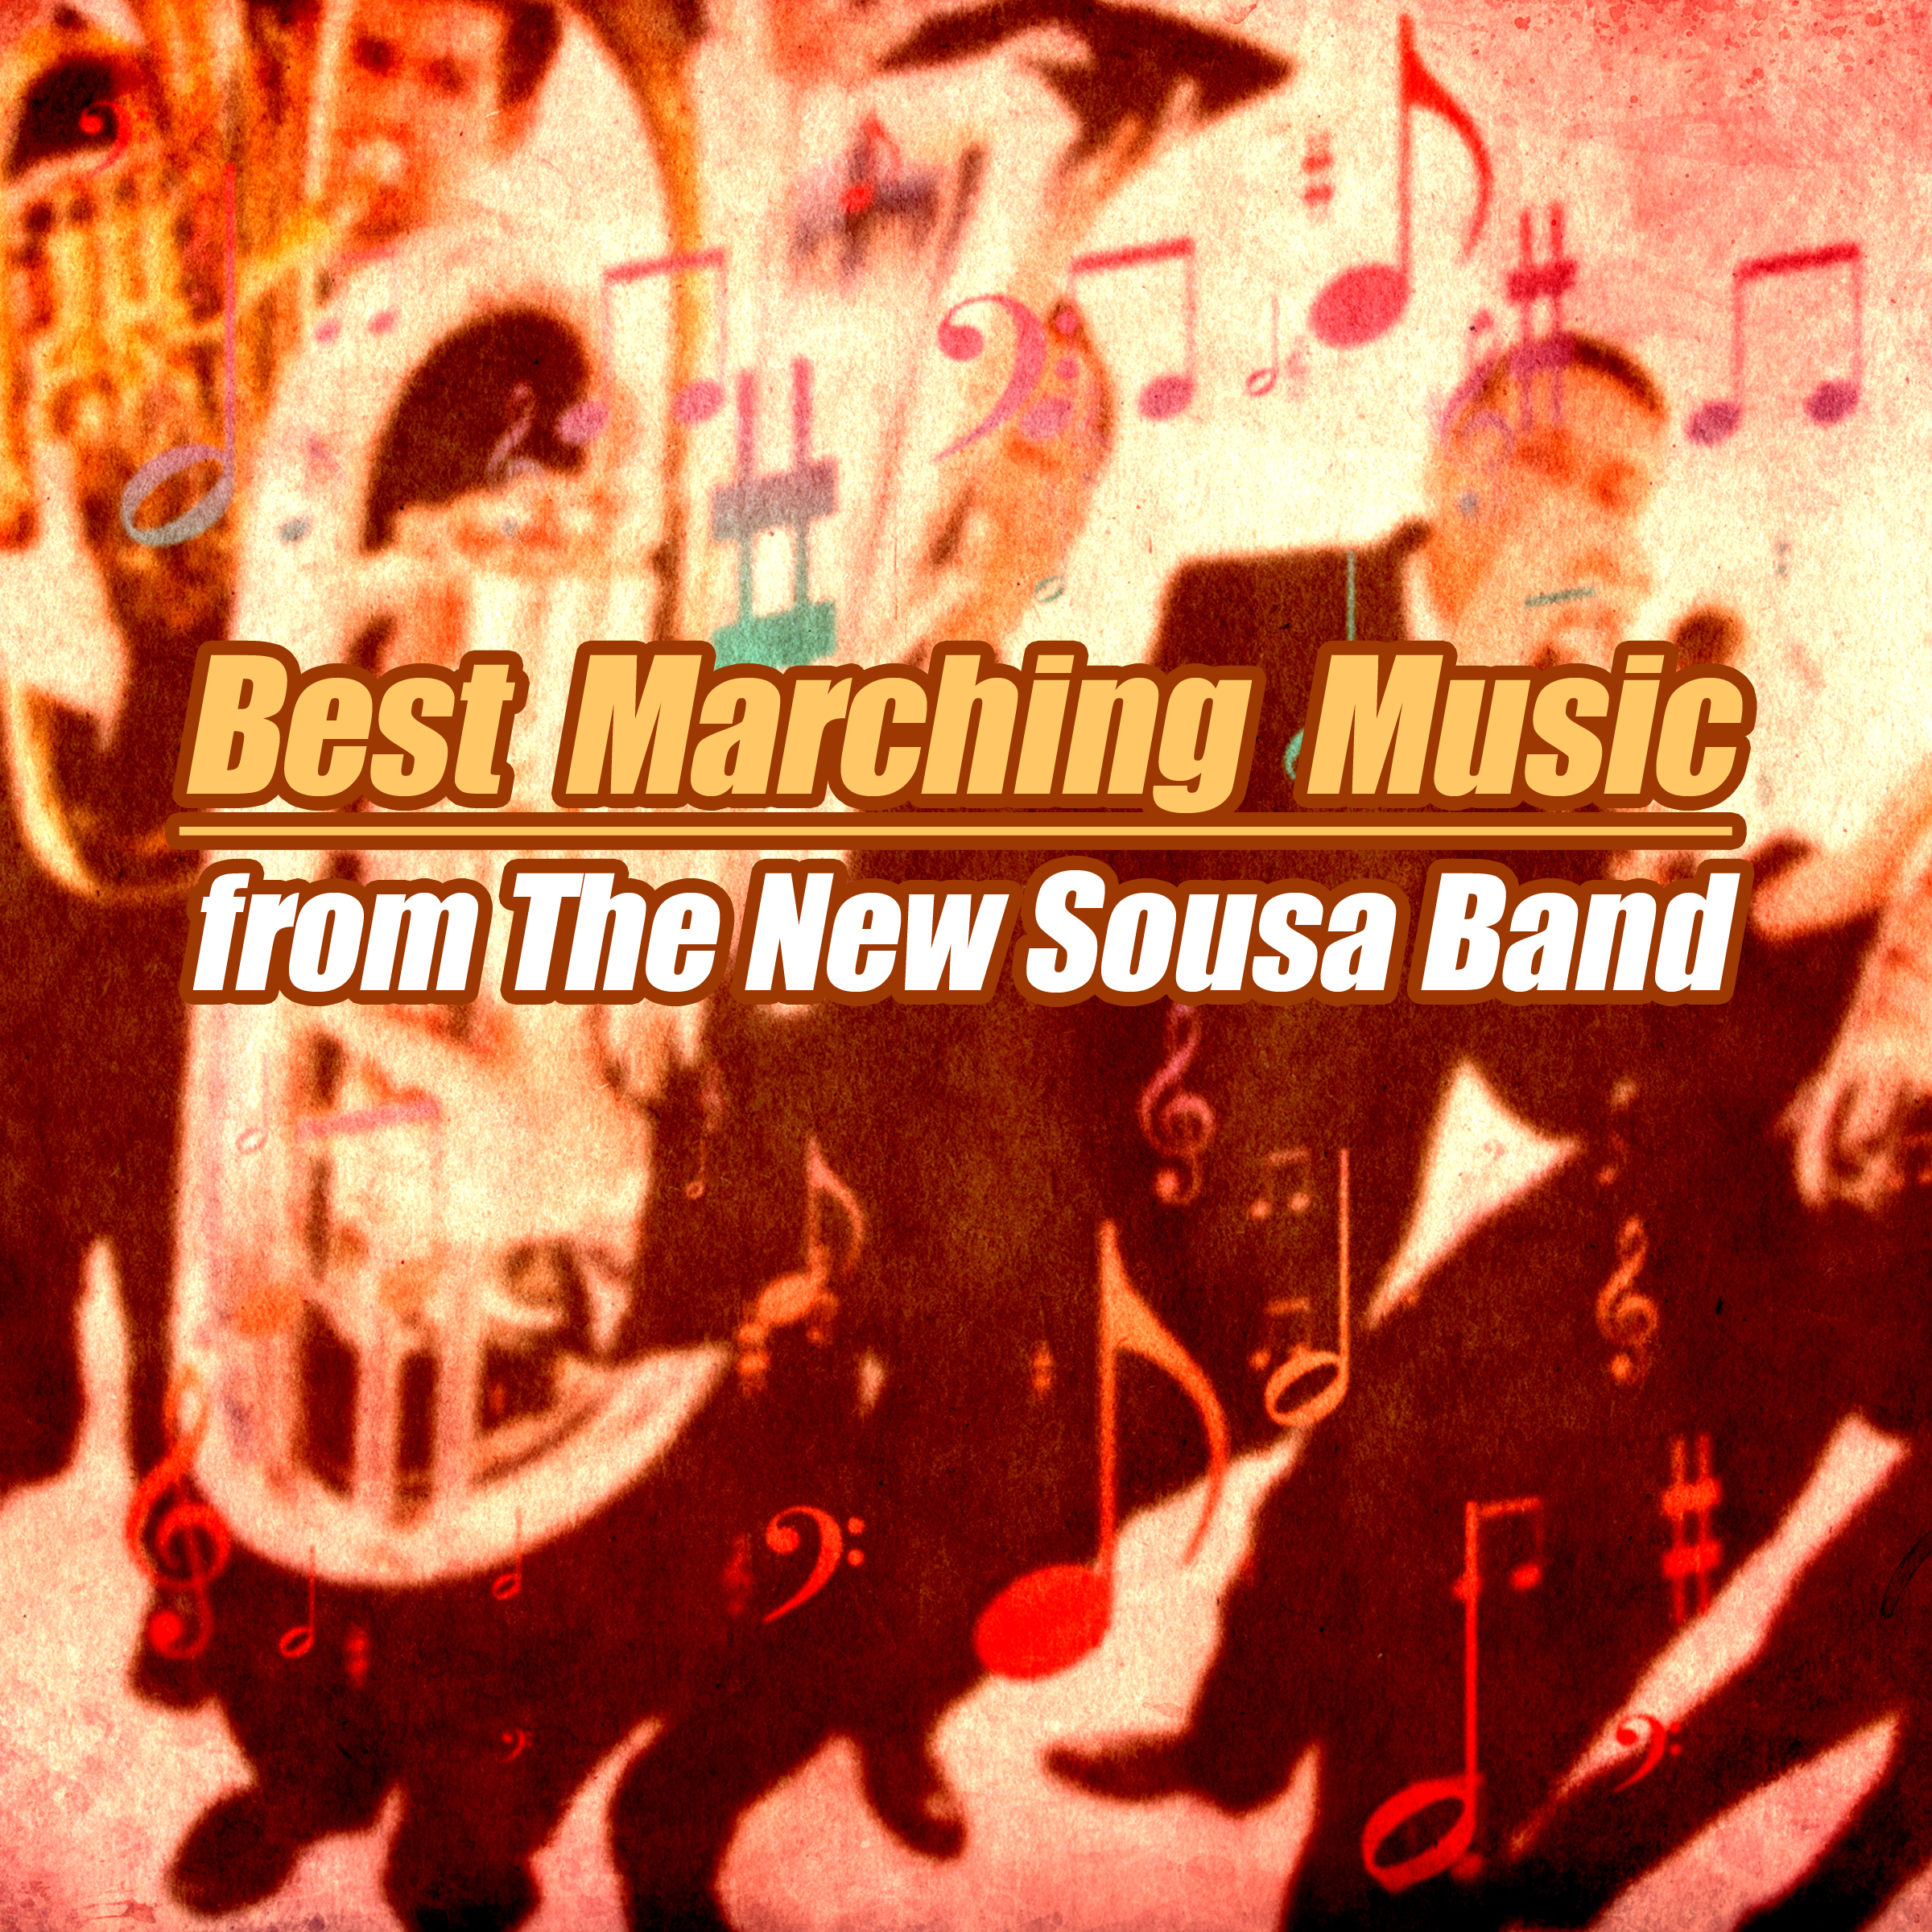 New Sousa Band - Best Marching Music